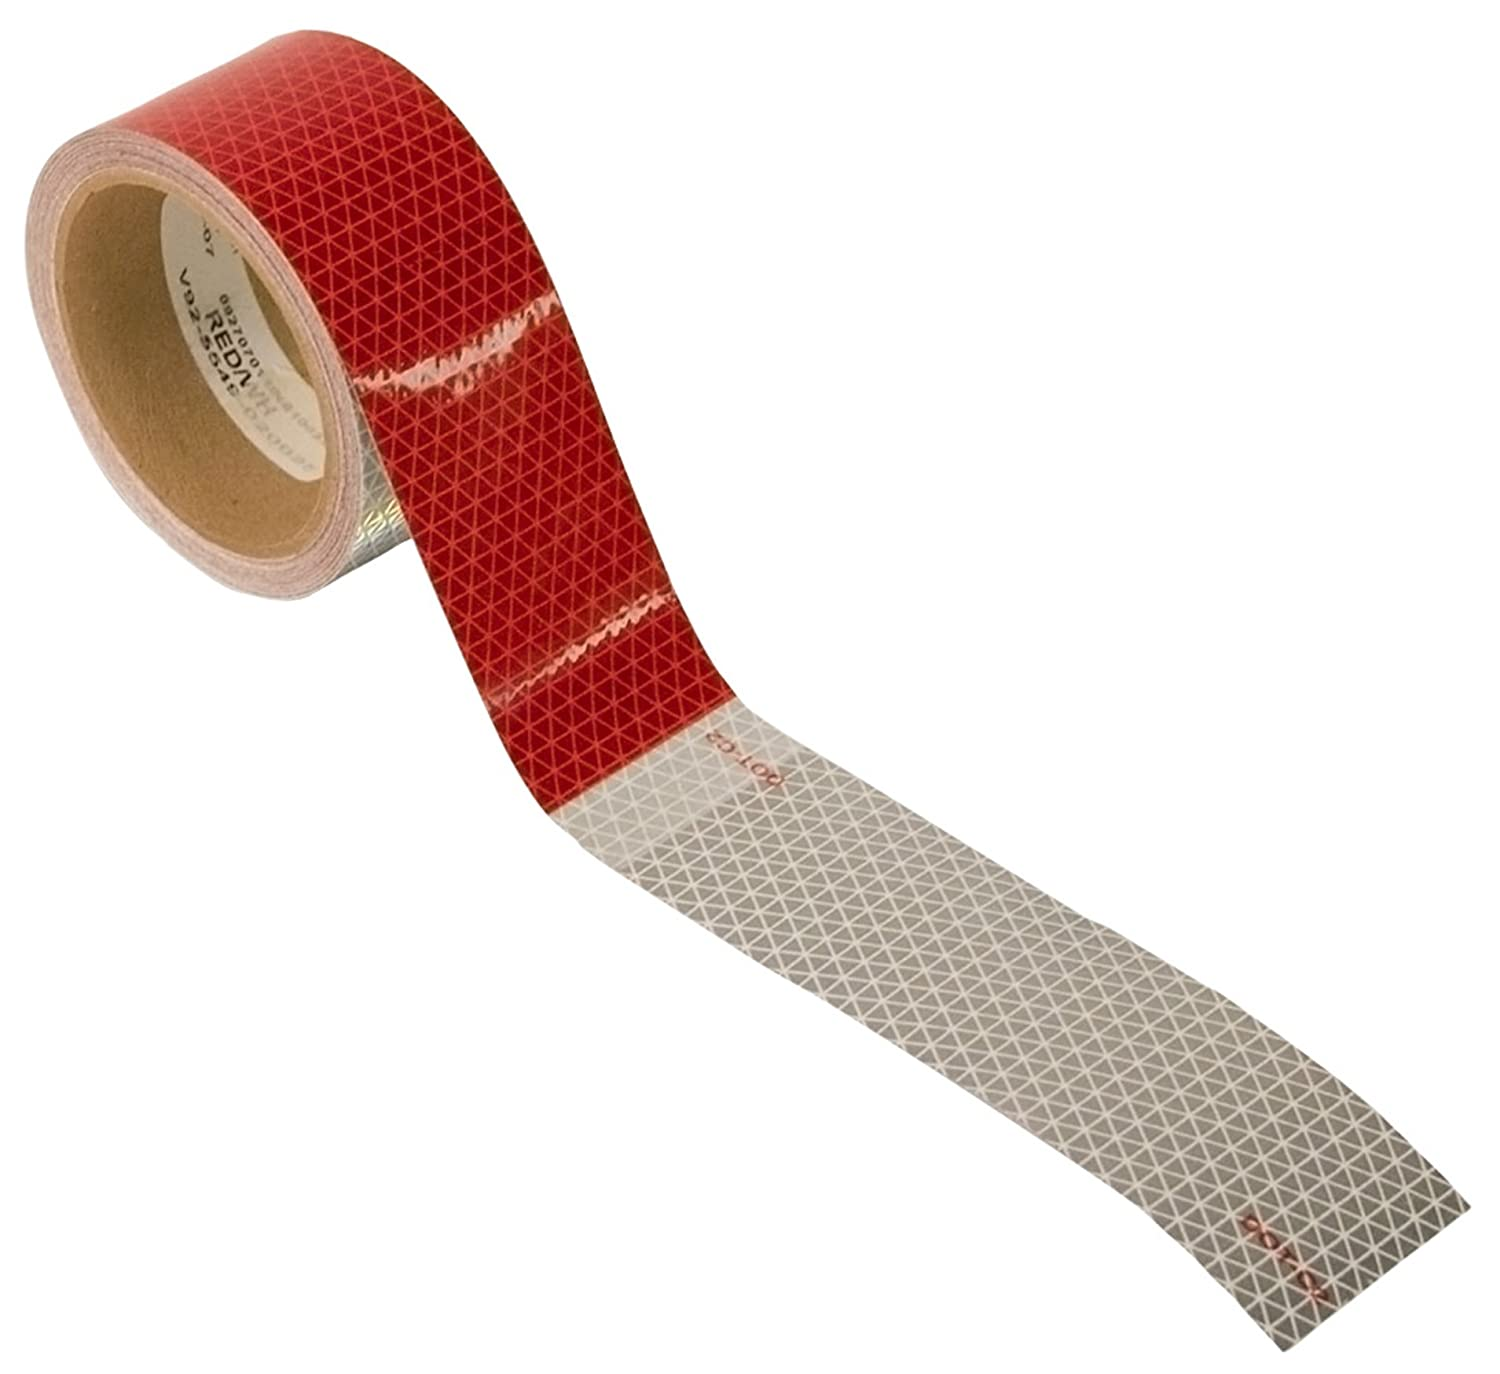 Blazer C285RW Red//White Conspicuity Tape 2 X 18-Inch 30-Foot Roll Pack of 1-Roll Blazer International Trailer /& Towing Accessories